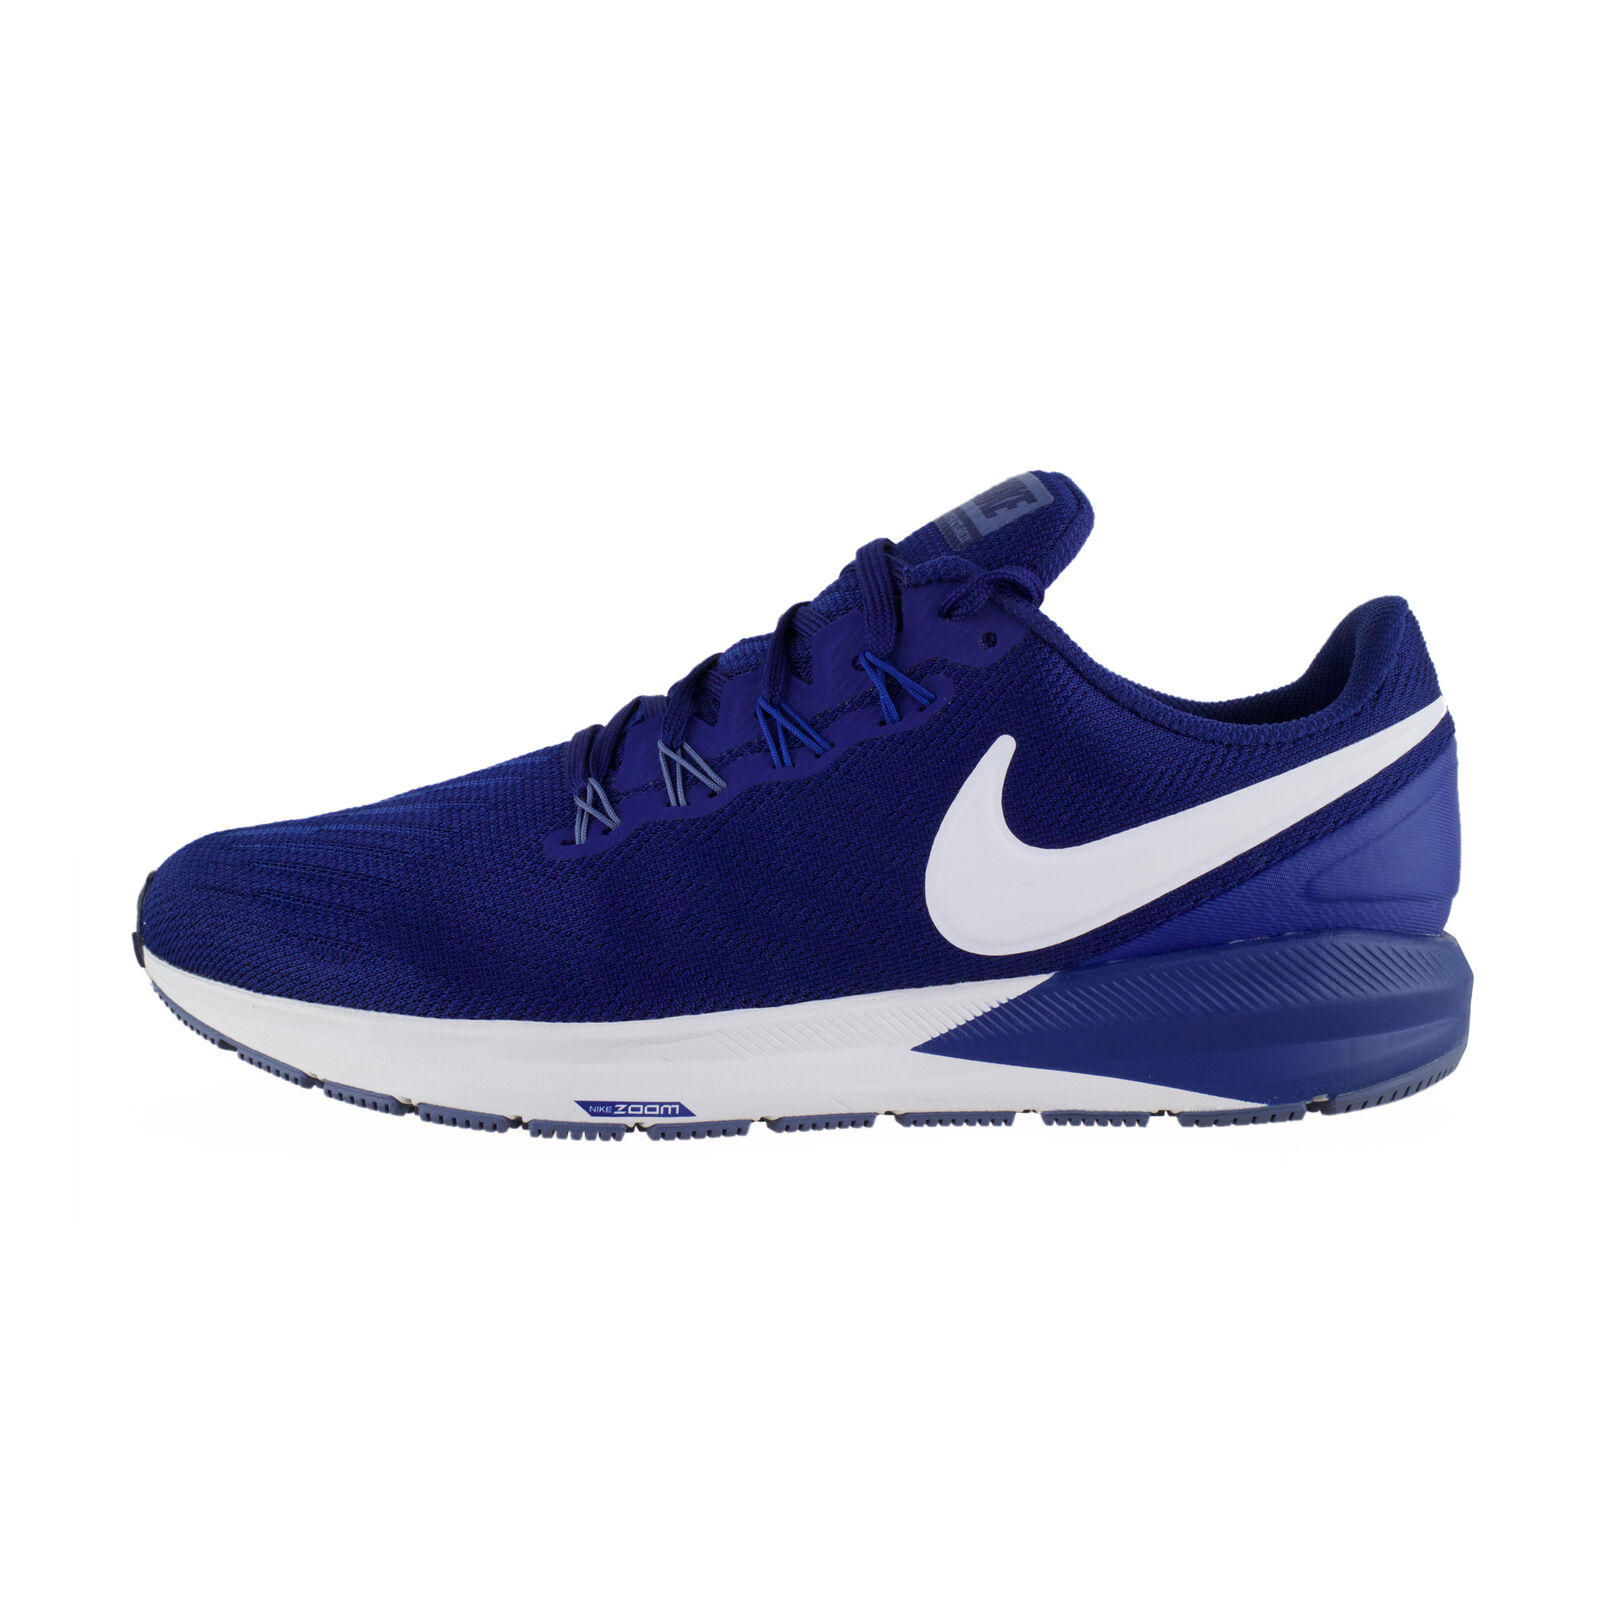 Nike Air zoom structure 22 azul blancoo estable de ejecución zapatos aa1636-404